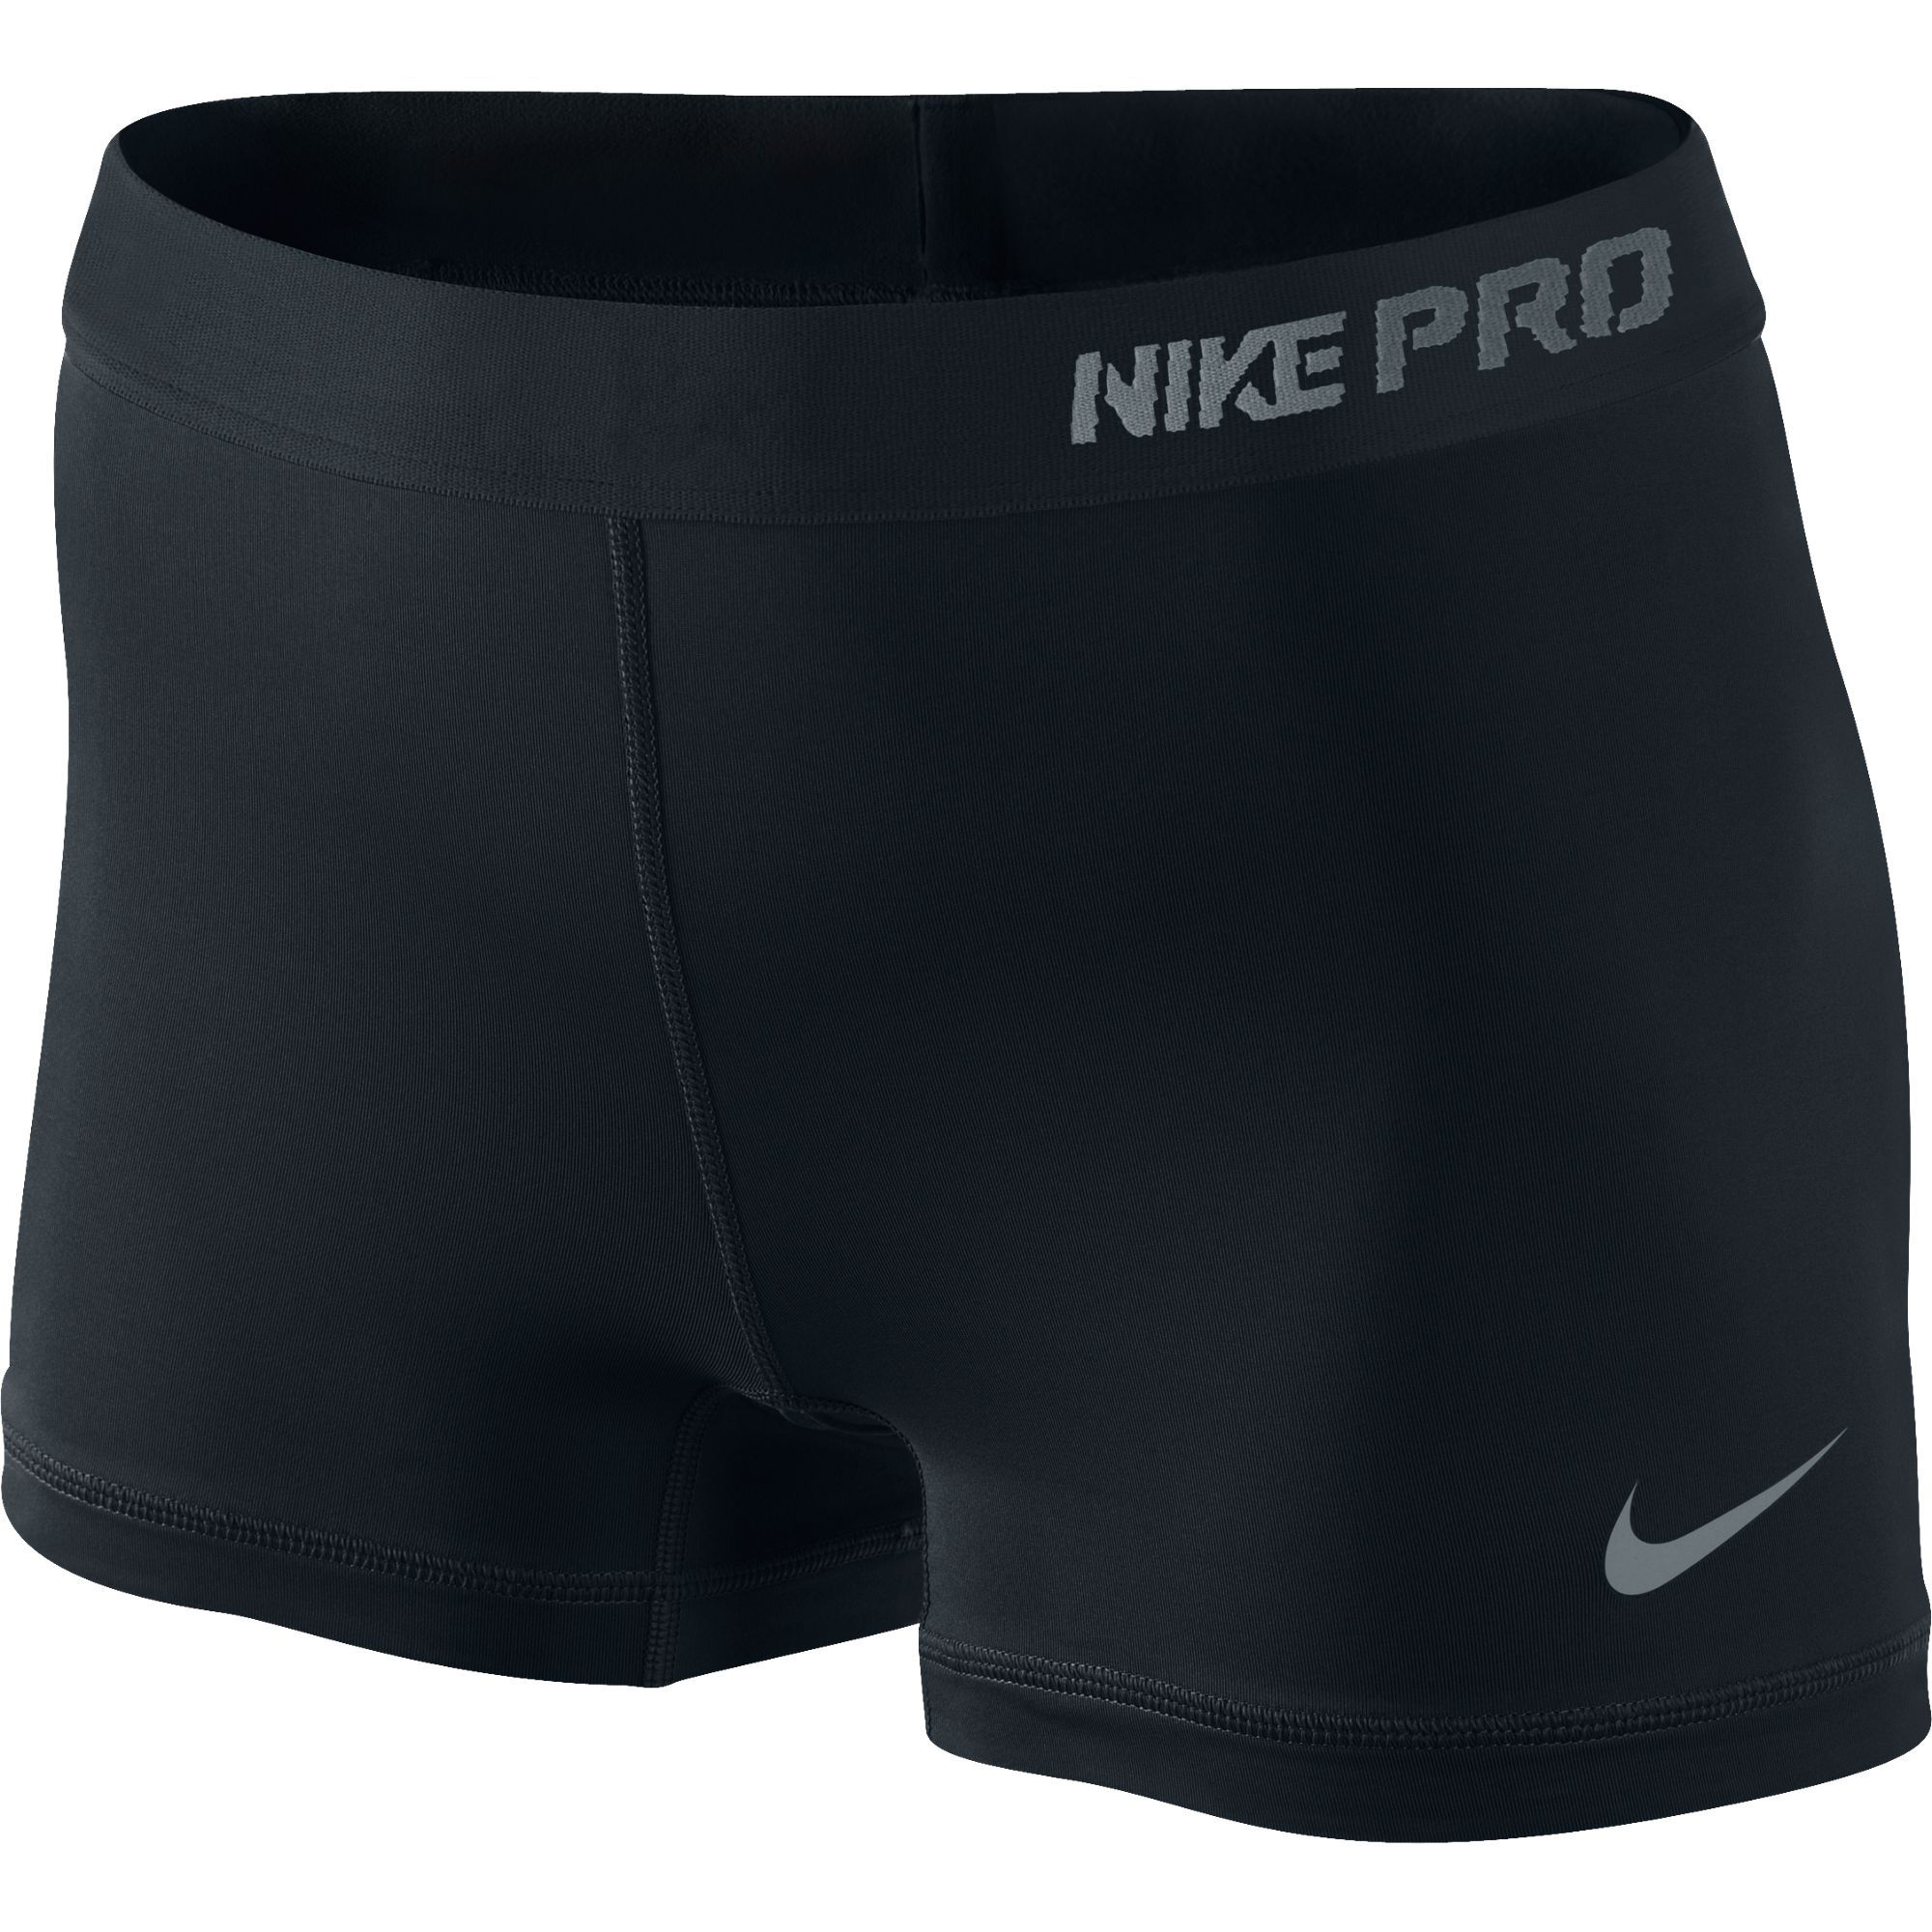 nike pro shorts ii f r damen ca 6 4 cm h 13. Black Bedroom Furniture Sets. Home Design Ideas